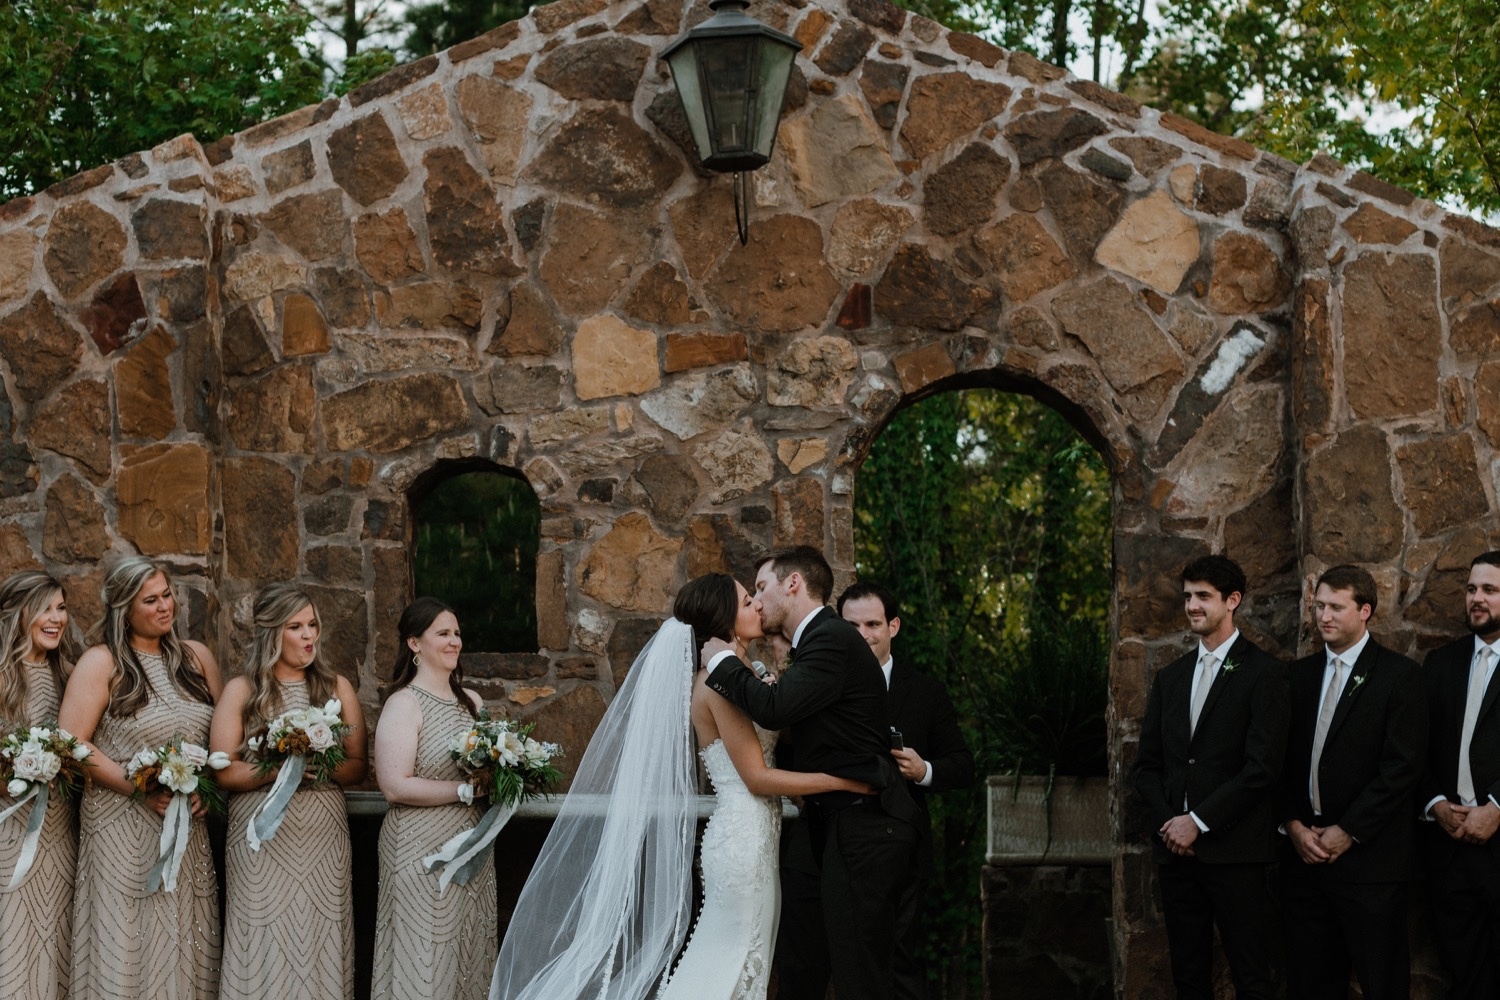 47_JacobandAliWeddingMattLaneFarmFreckledFoxPhotography-723.jpg